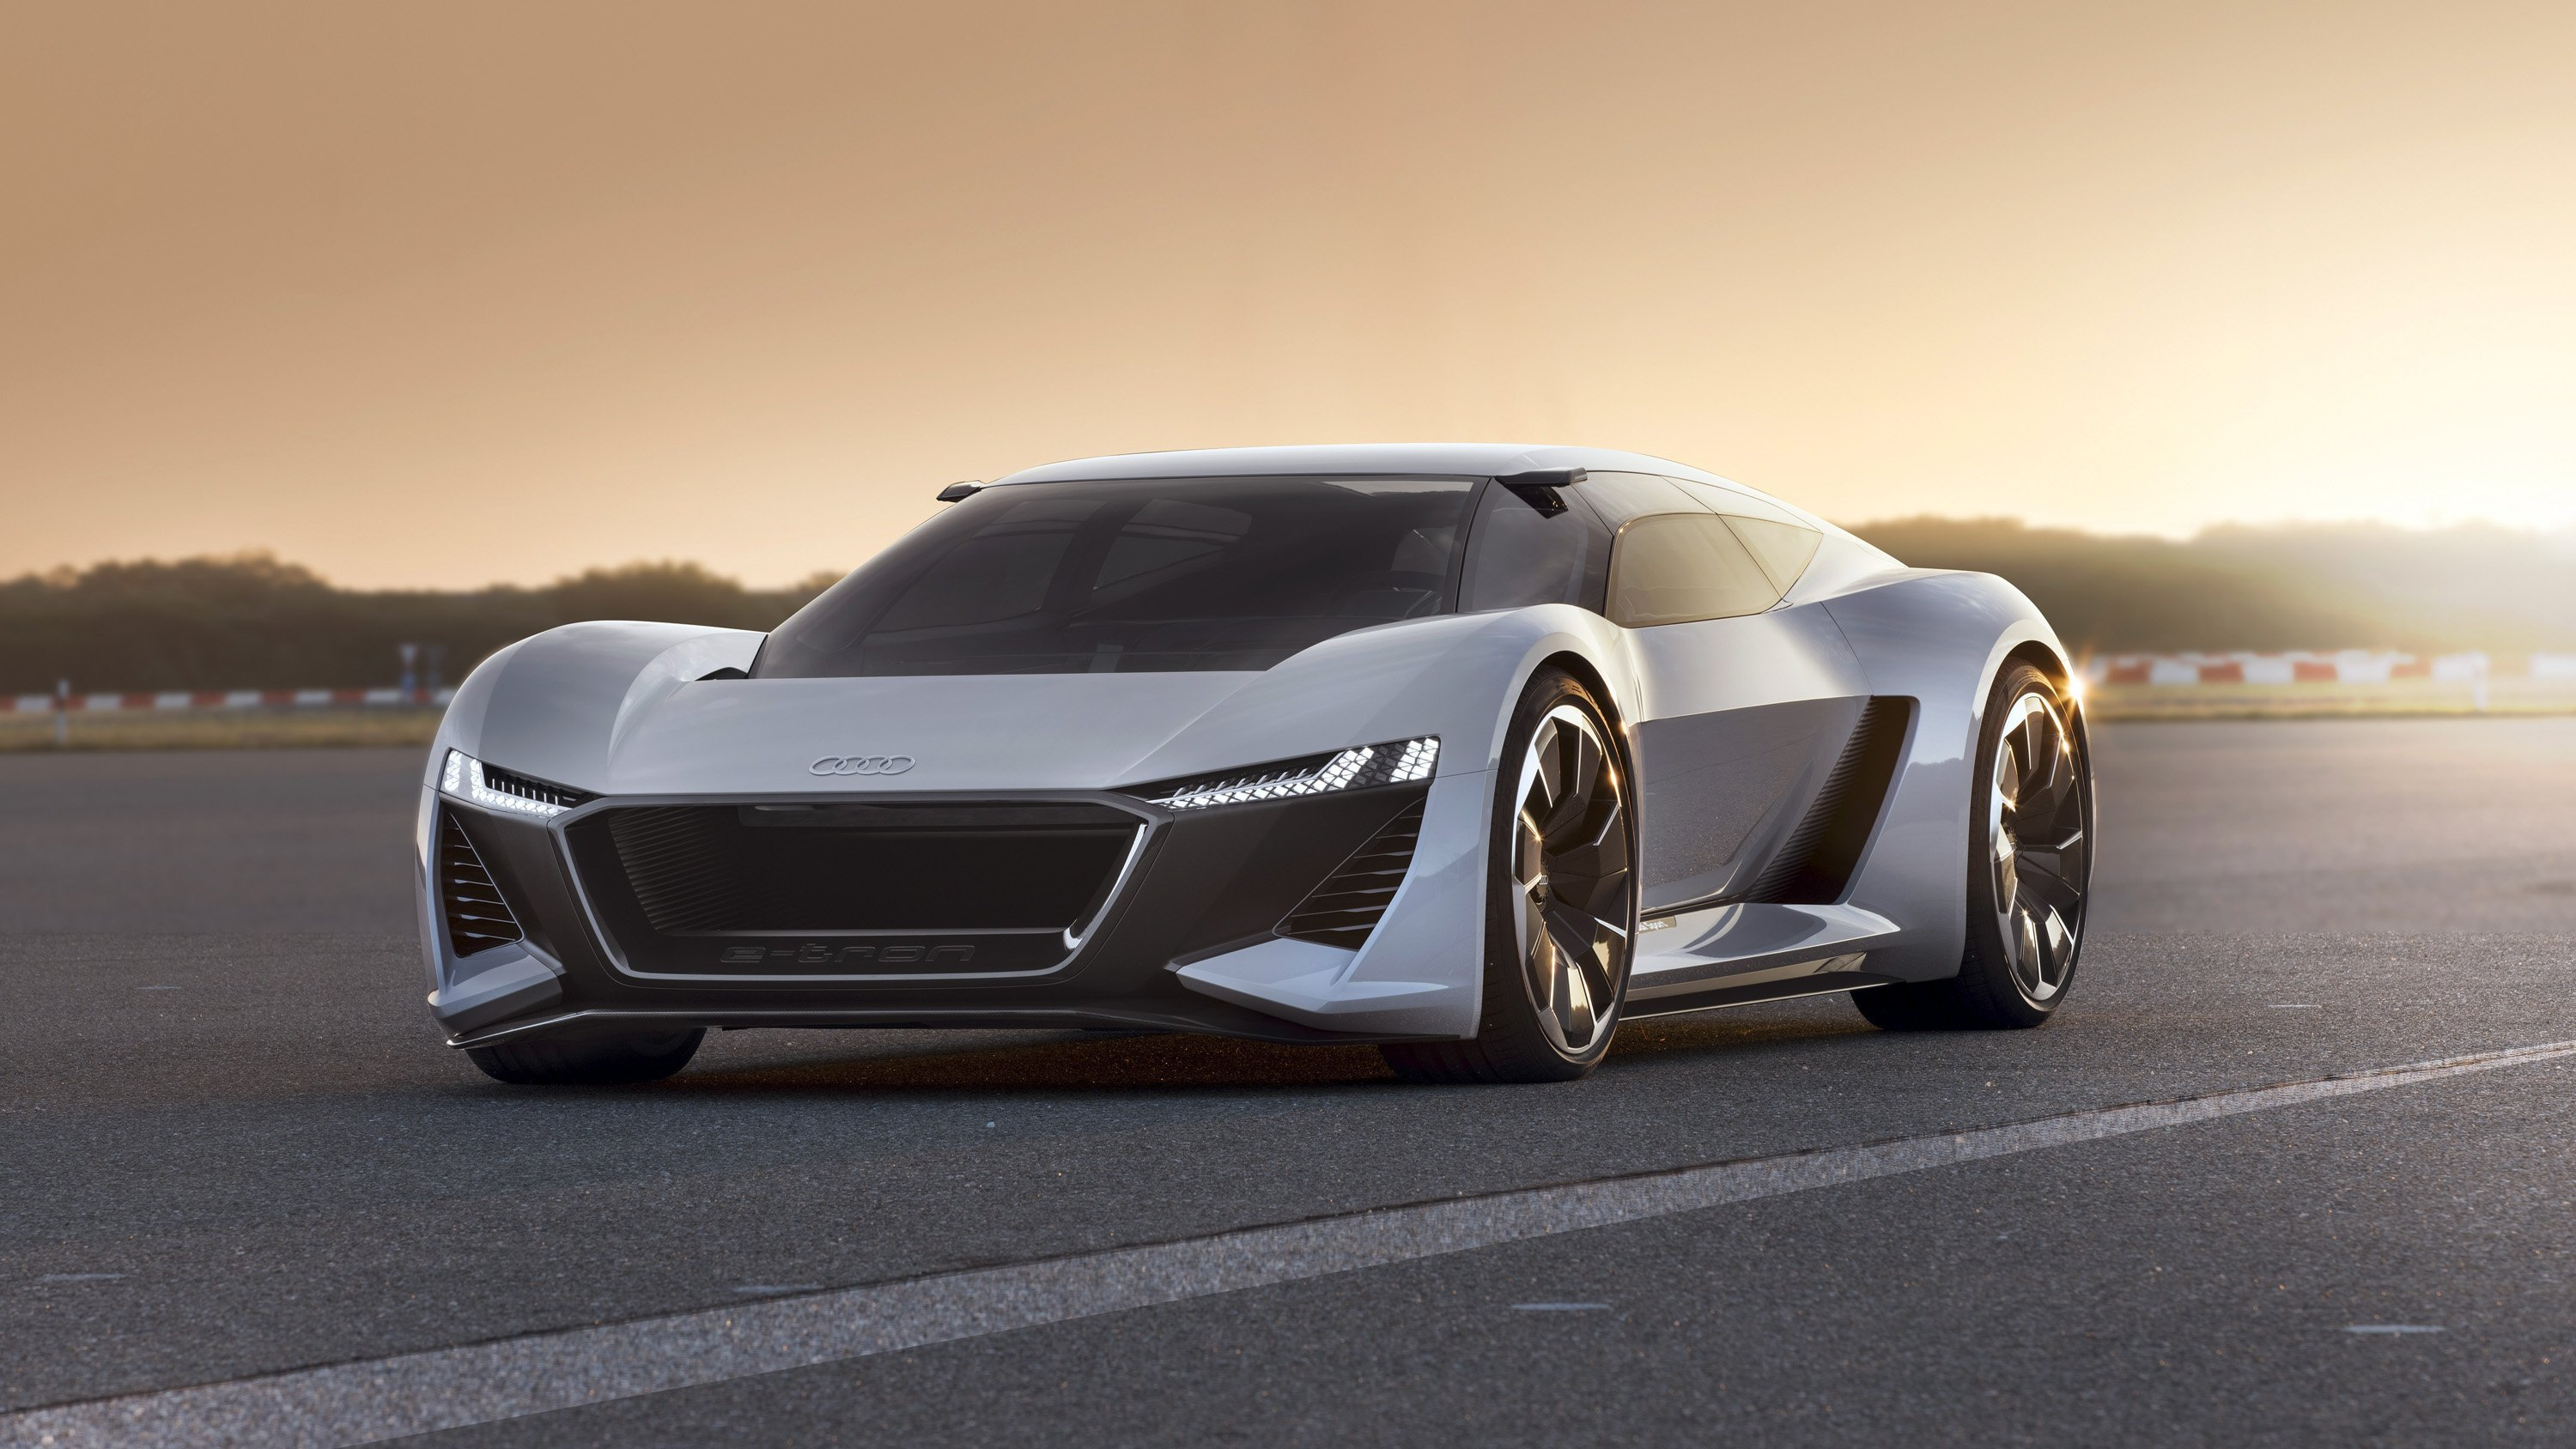 Latest 2018 Audi Pb18 E Tron Concept Top Speed Free Download